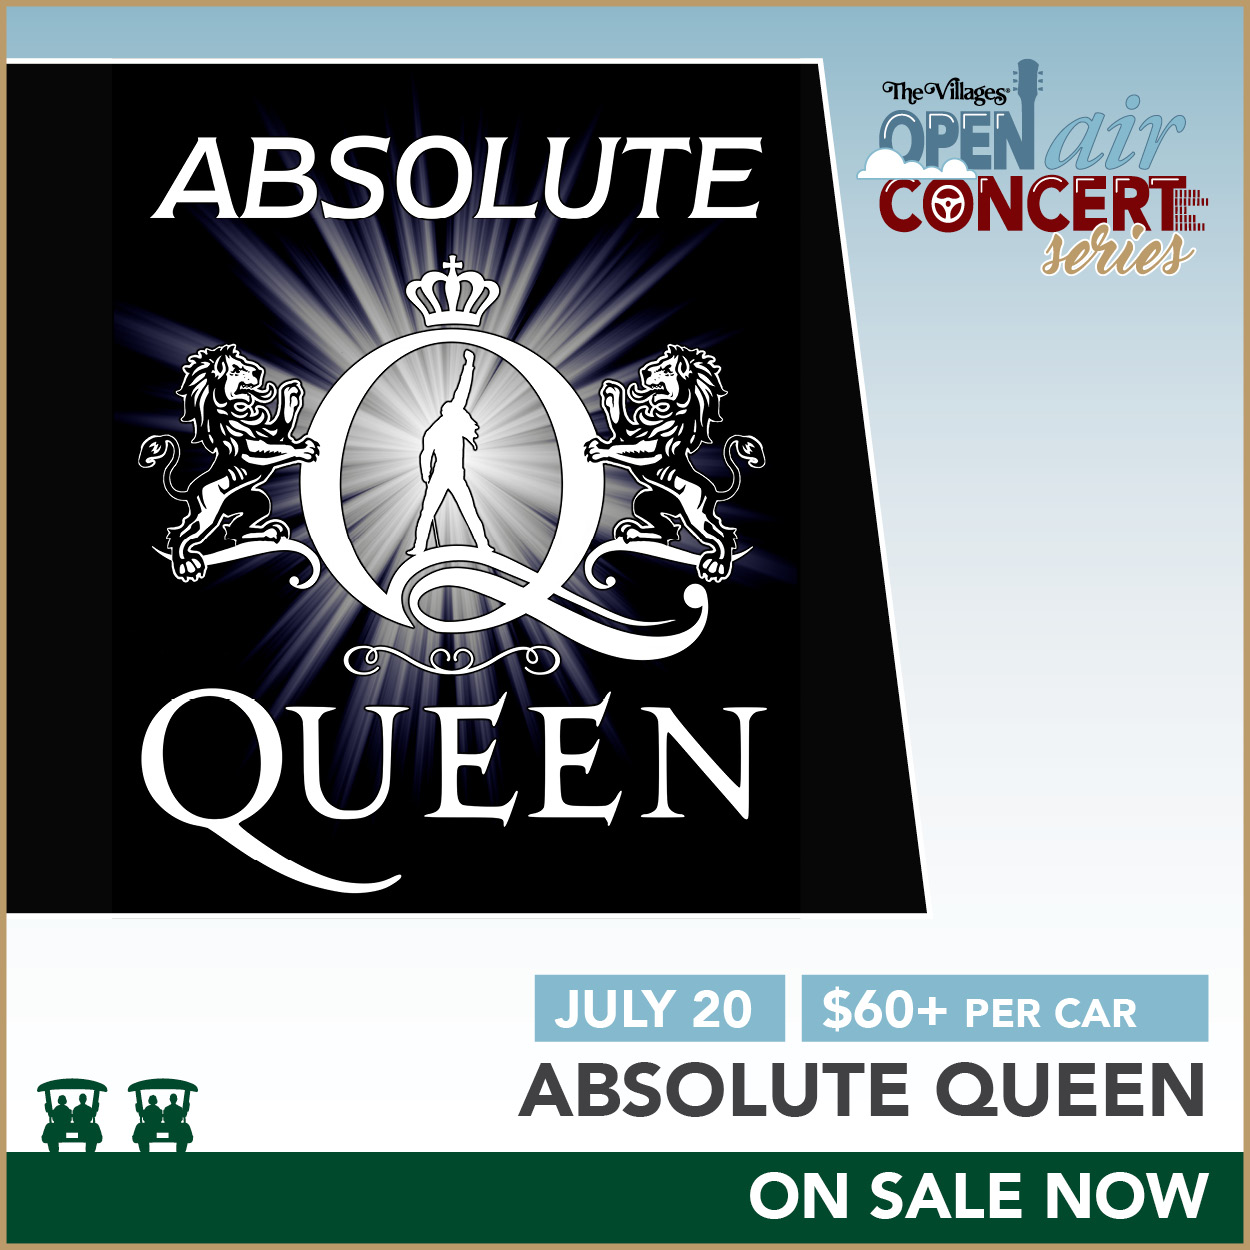 Open Air Concert Series – Absolute Queen